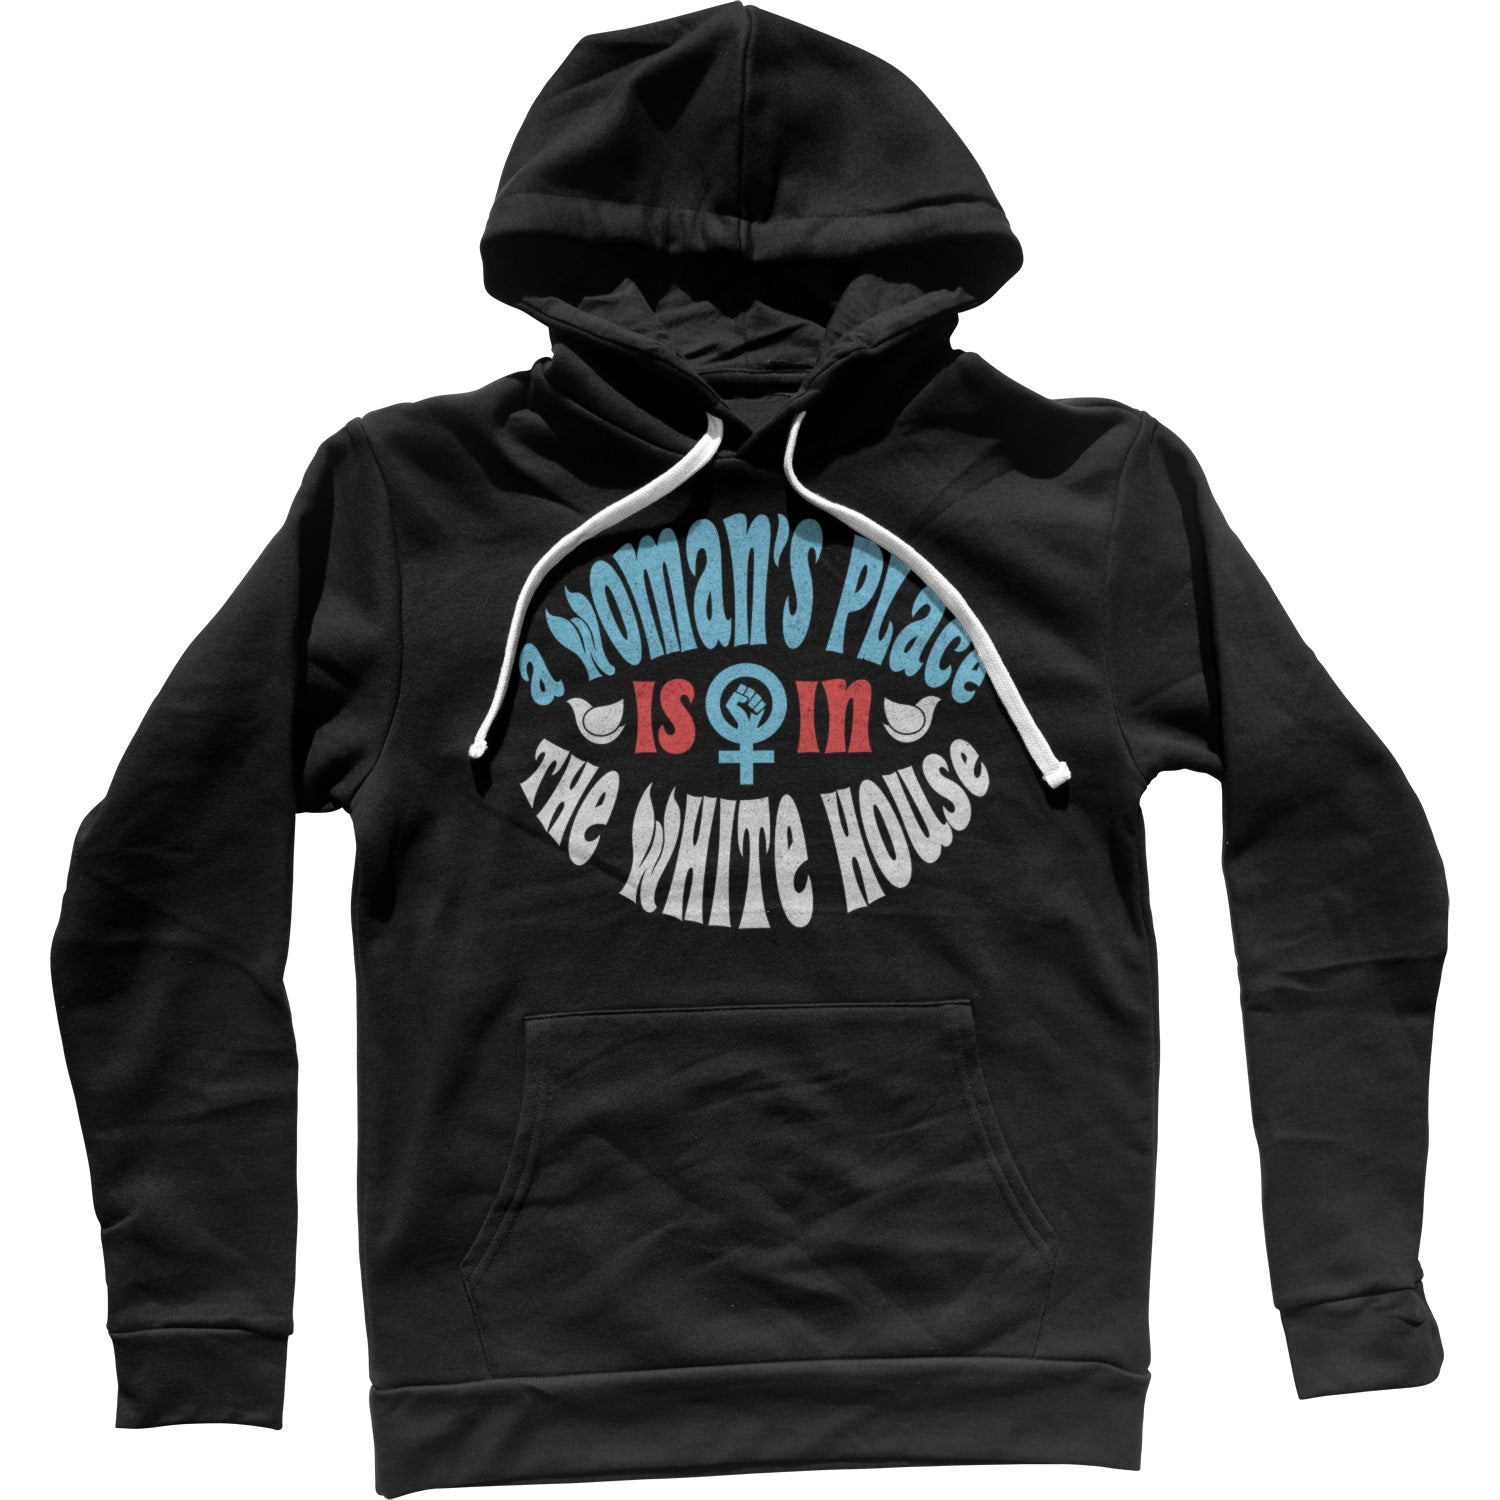 A Woman's Place is in The White House Unisex Hoodie